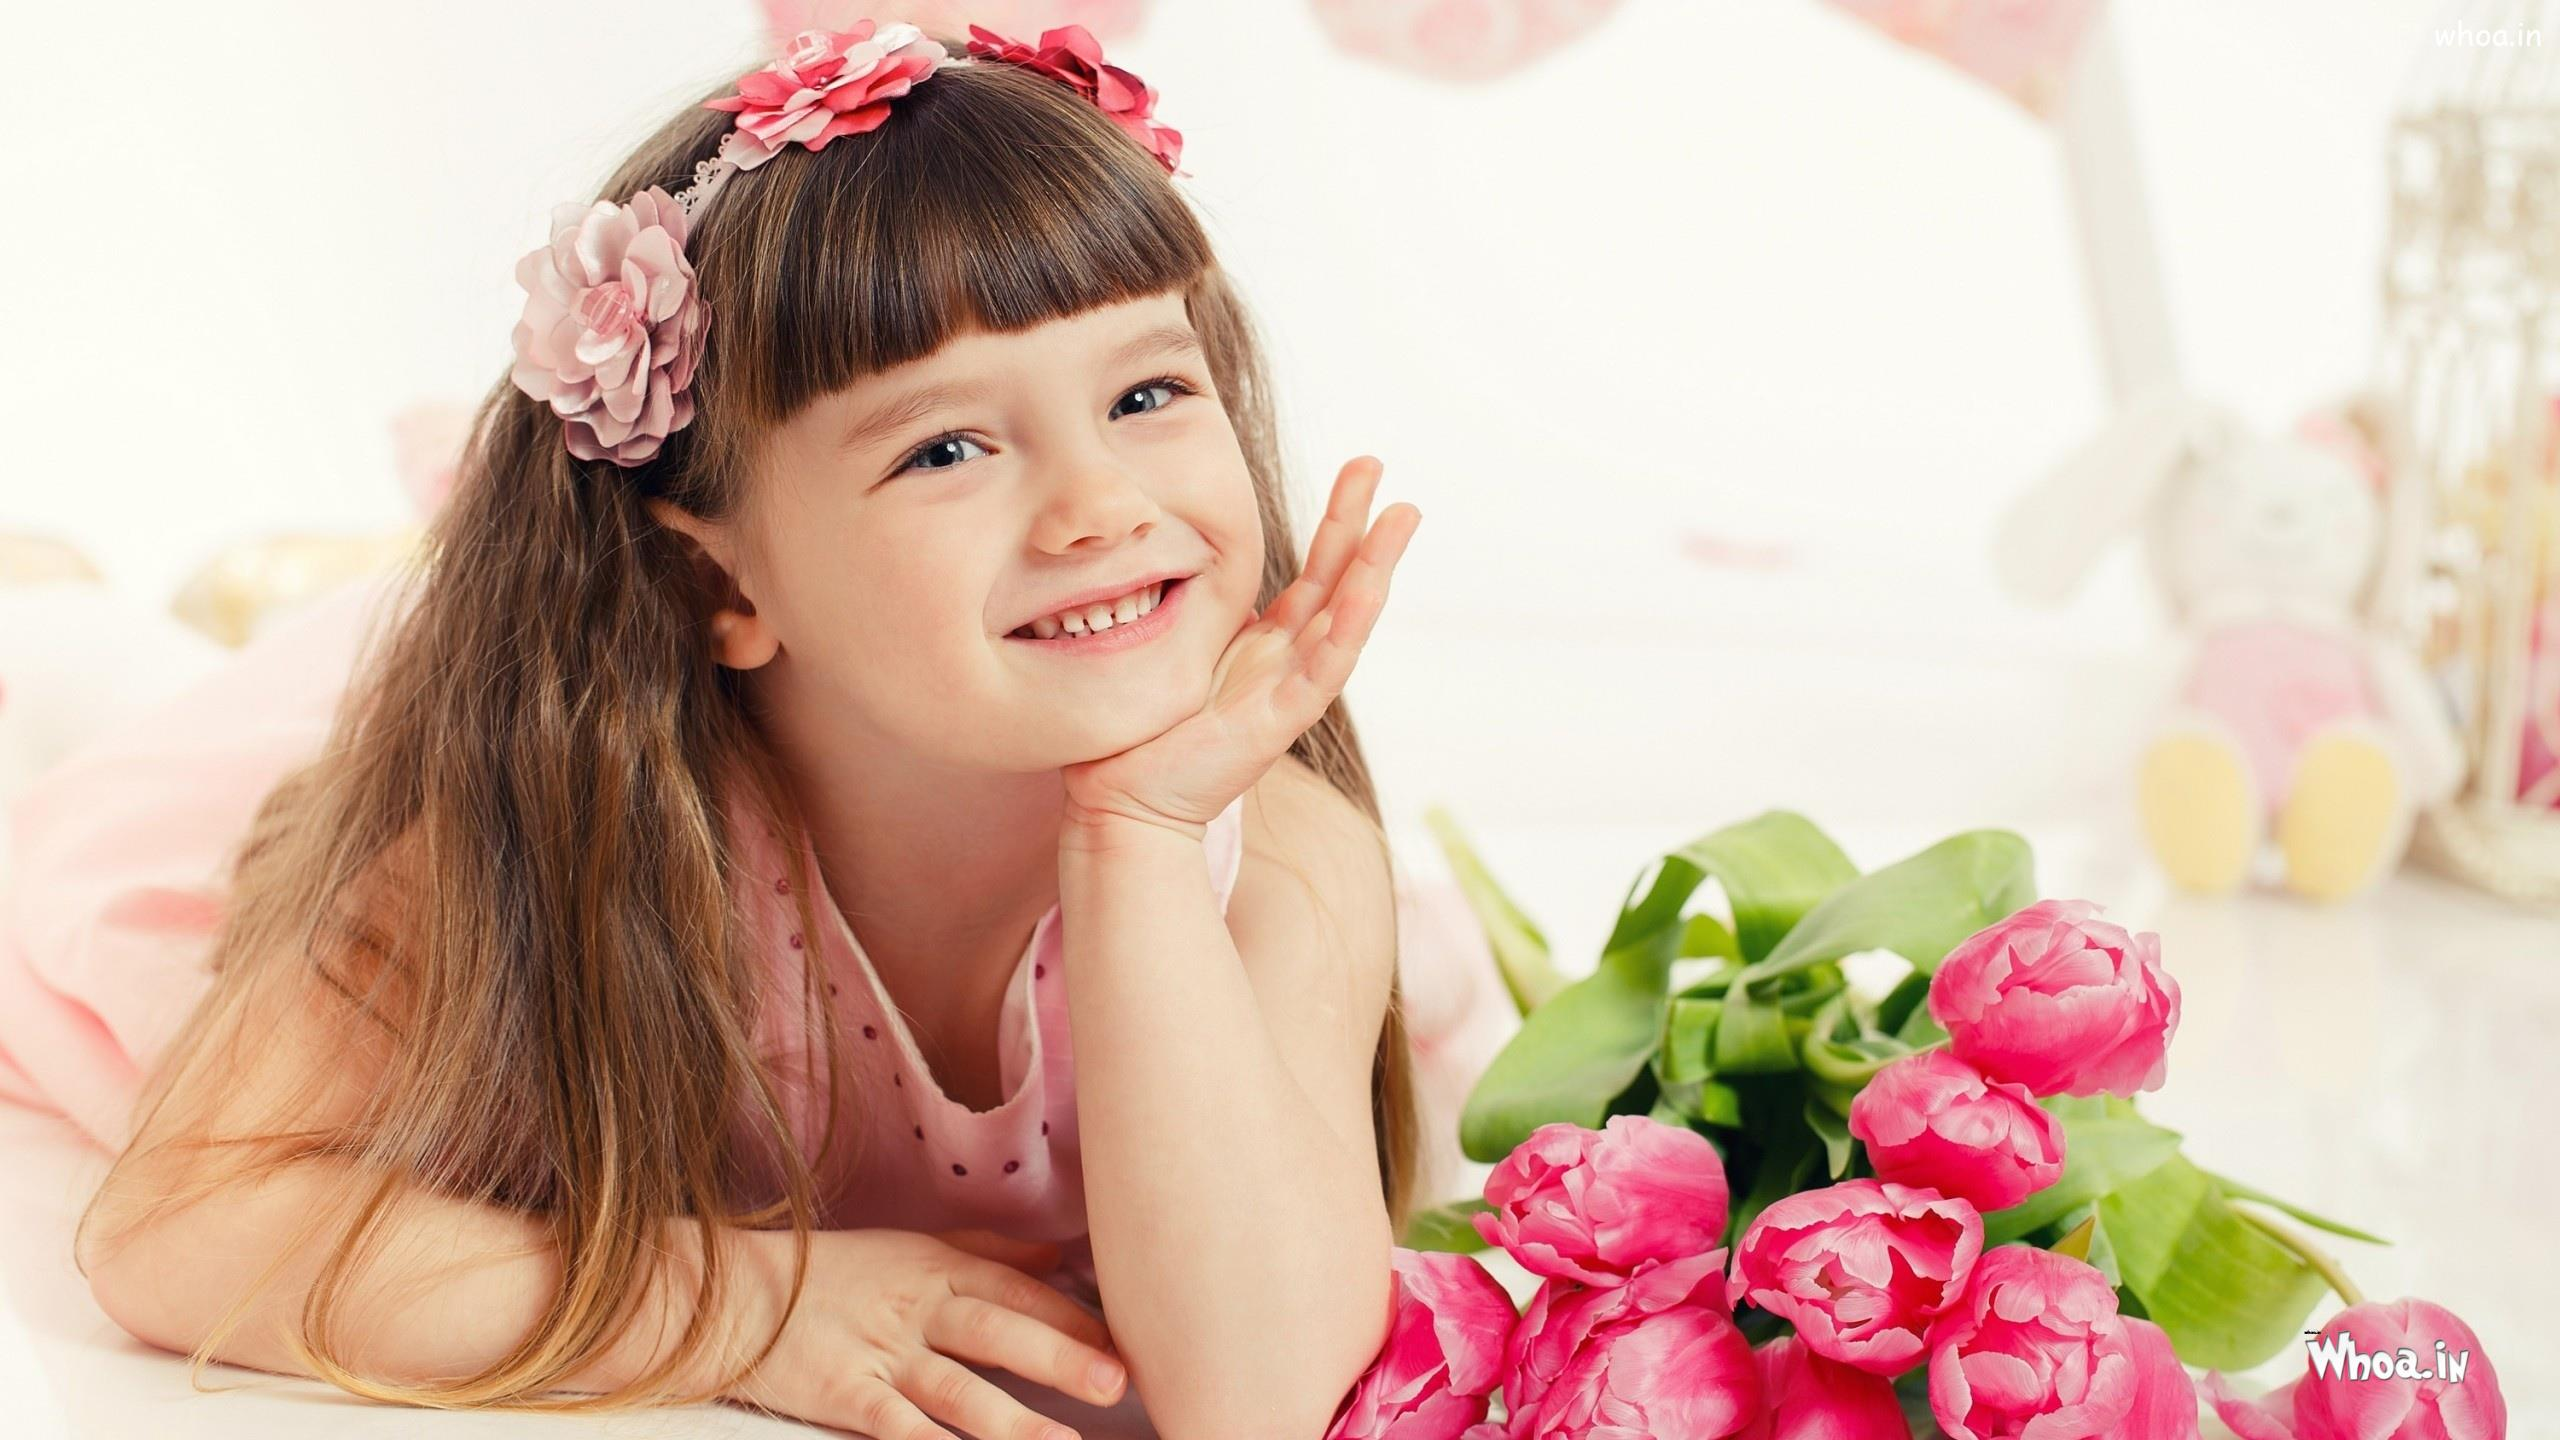 little baby girl smile with flowers hd cute baby wallpaper